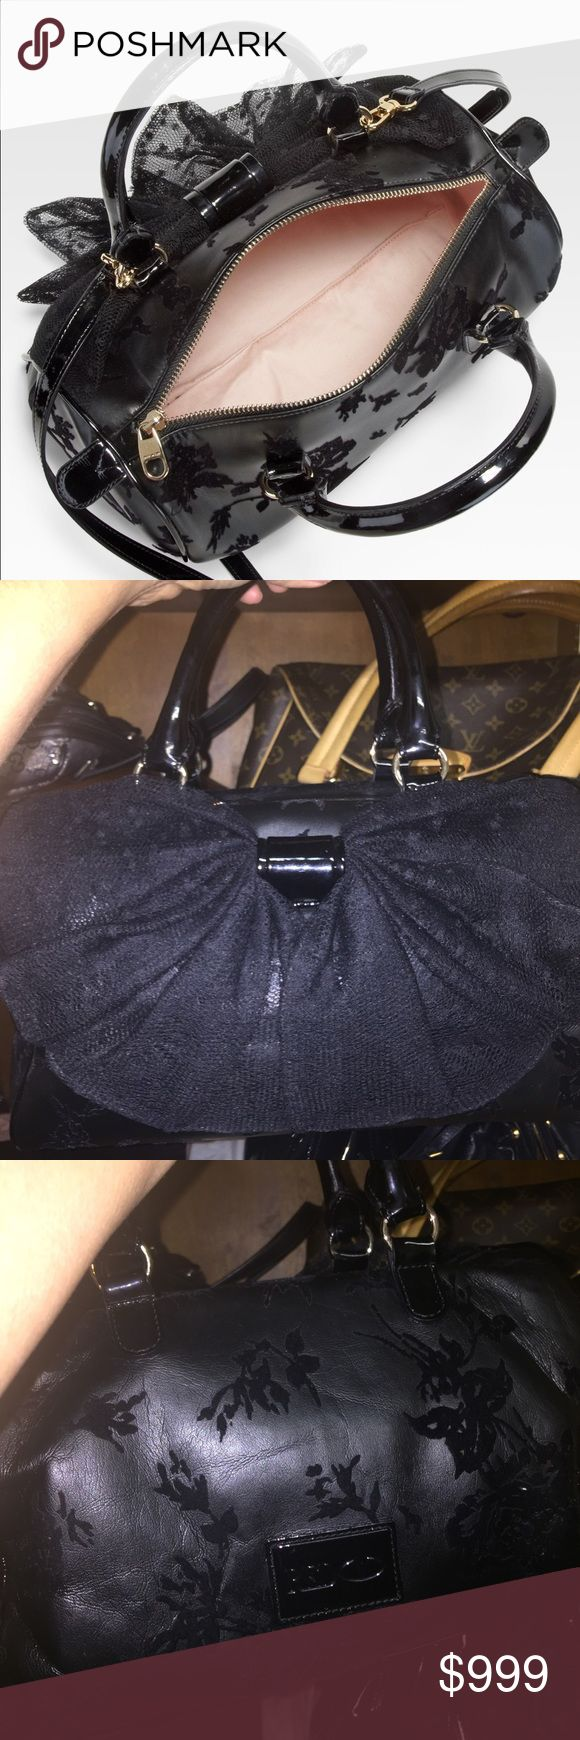 Red Valentino Velvet on lambskin and lace bow with patent leather straps and piping. Pink lining has dust bag well kept. Dustbag included with long strap. Use offer button for sales Valentino Bags Crossbody Bags